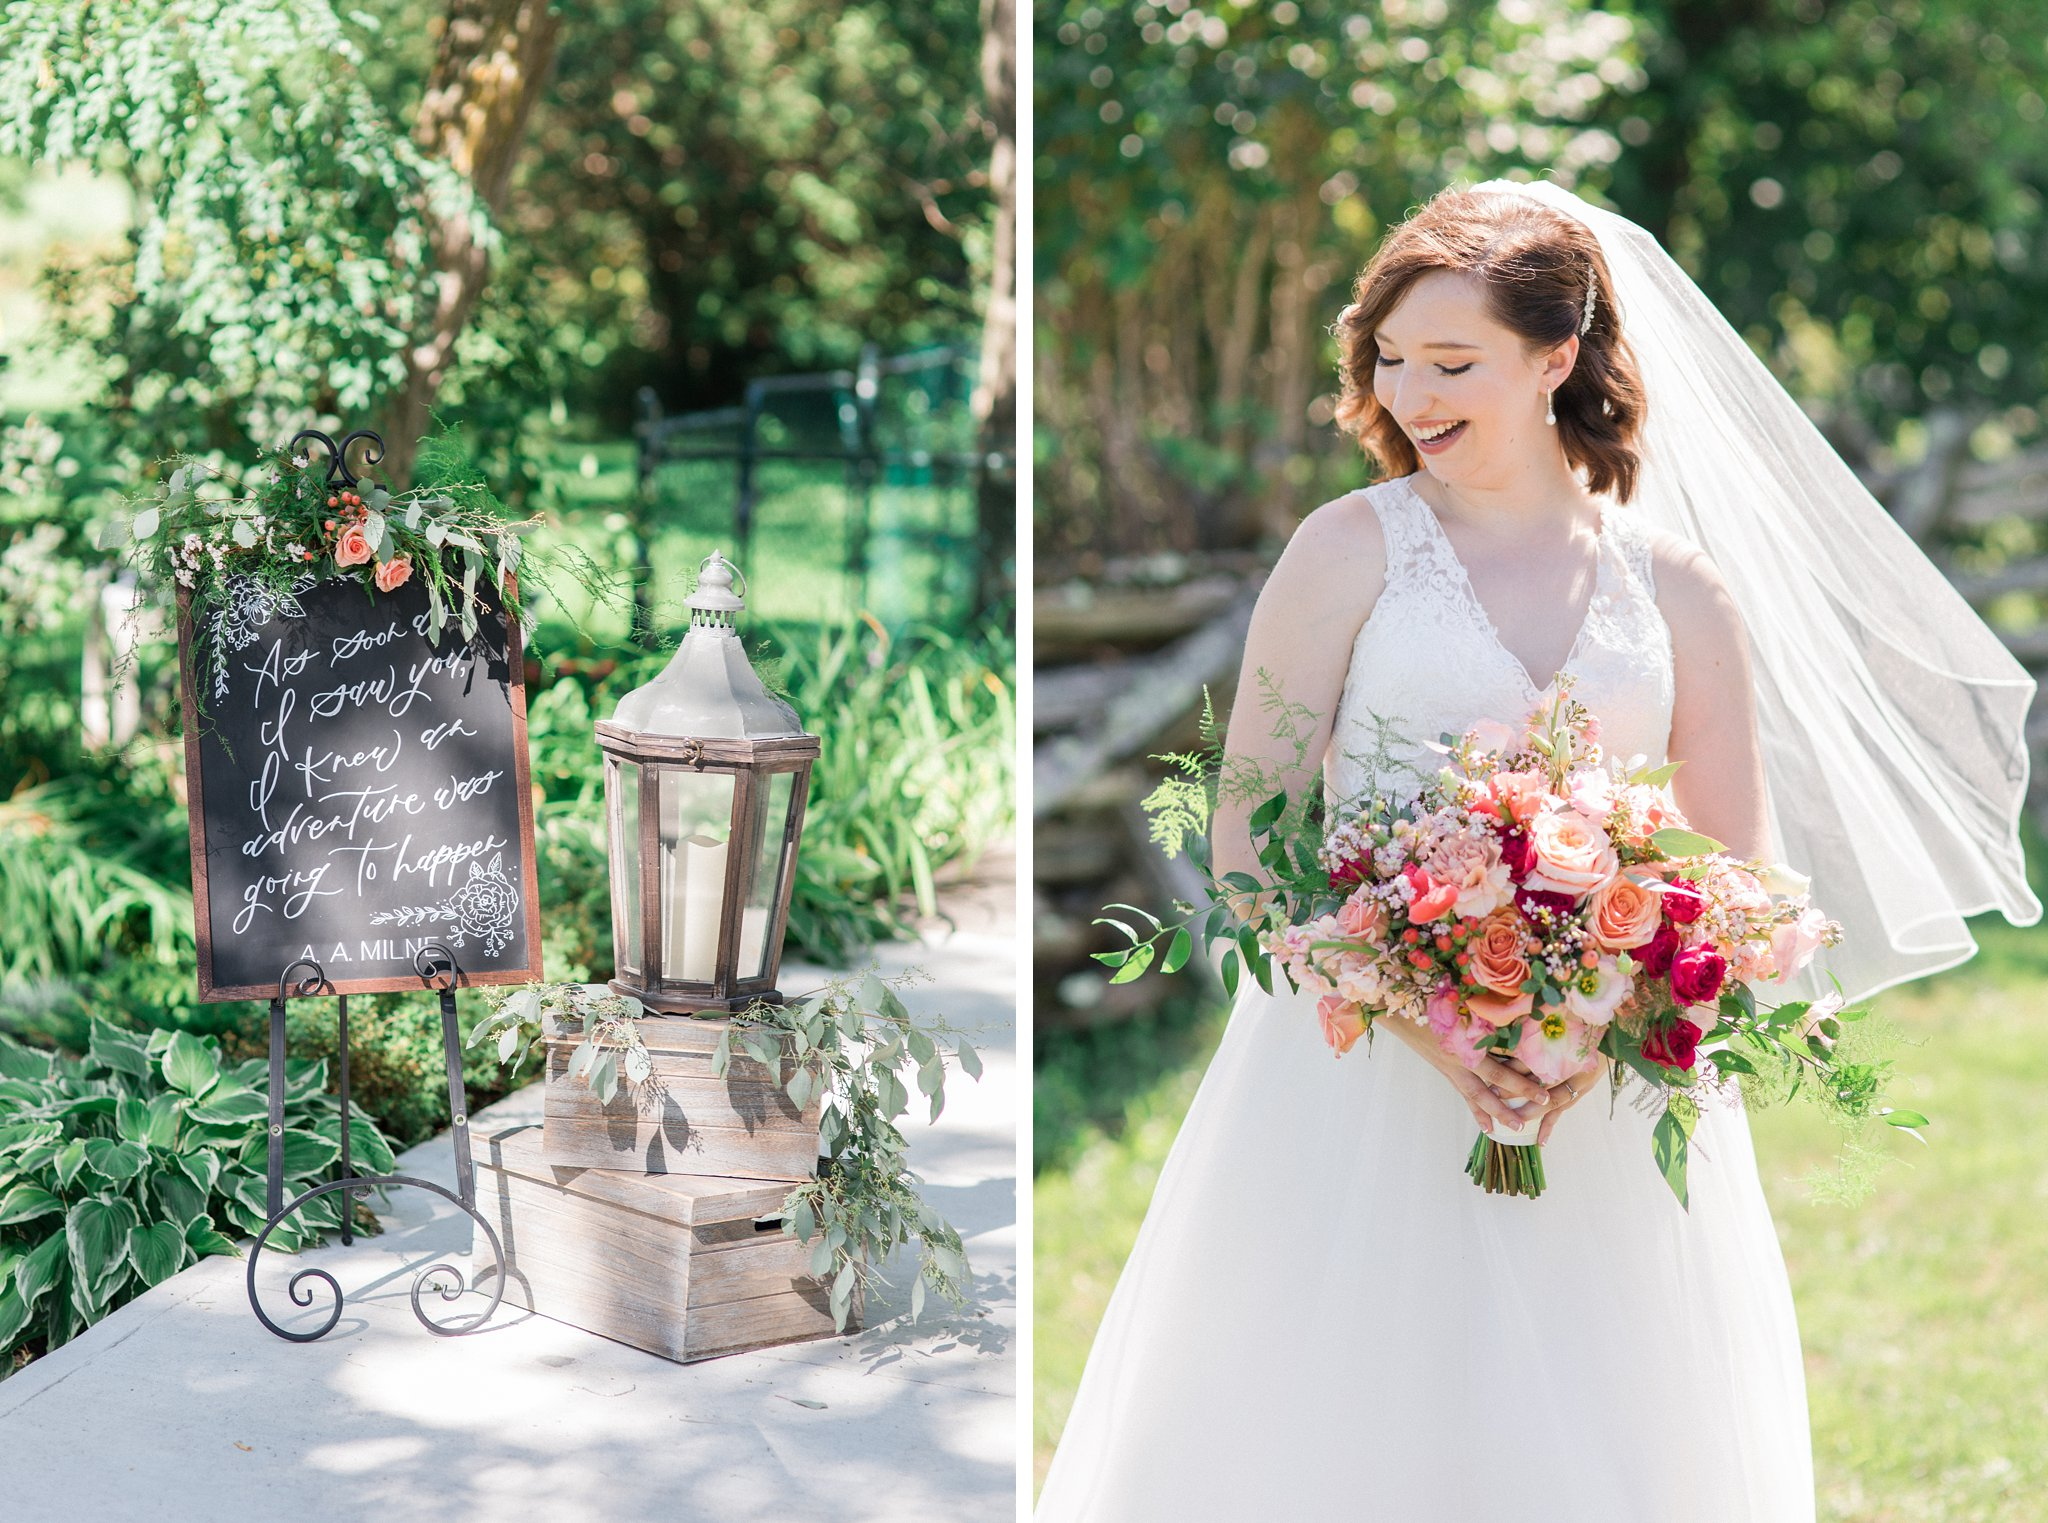 Chalked by Mabz ceremony calligraphy Dog-friendly wedding venue Ottawa Stonefields Amy Pinder Photography